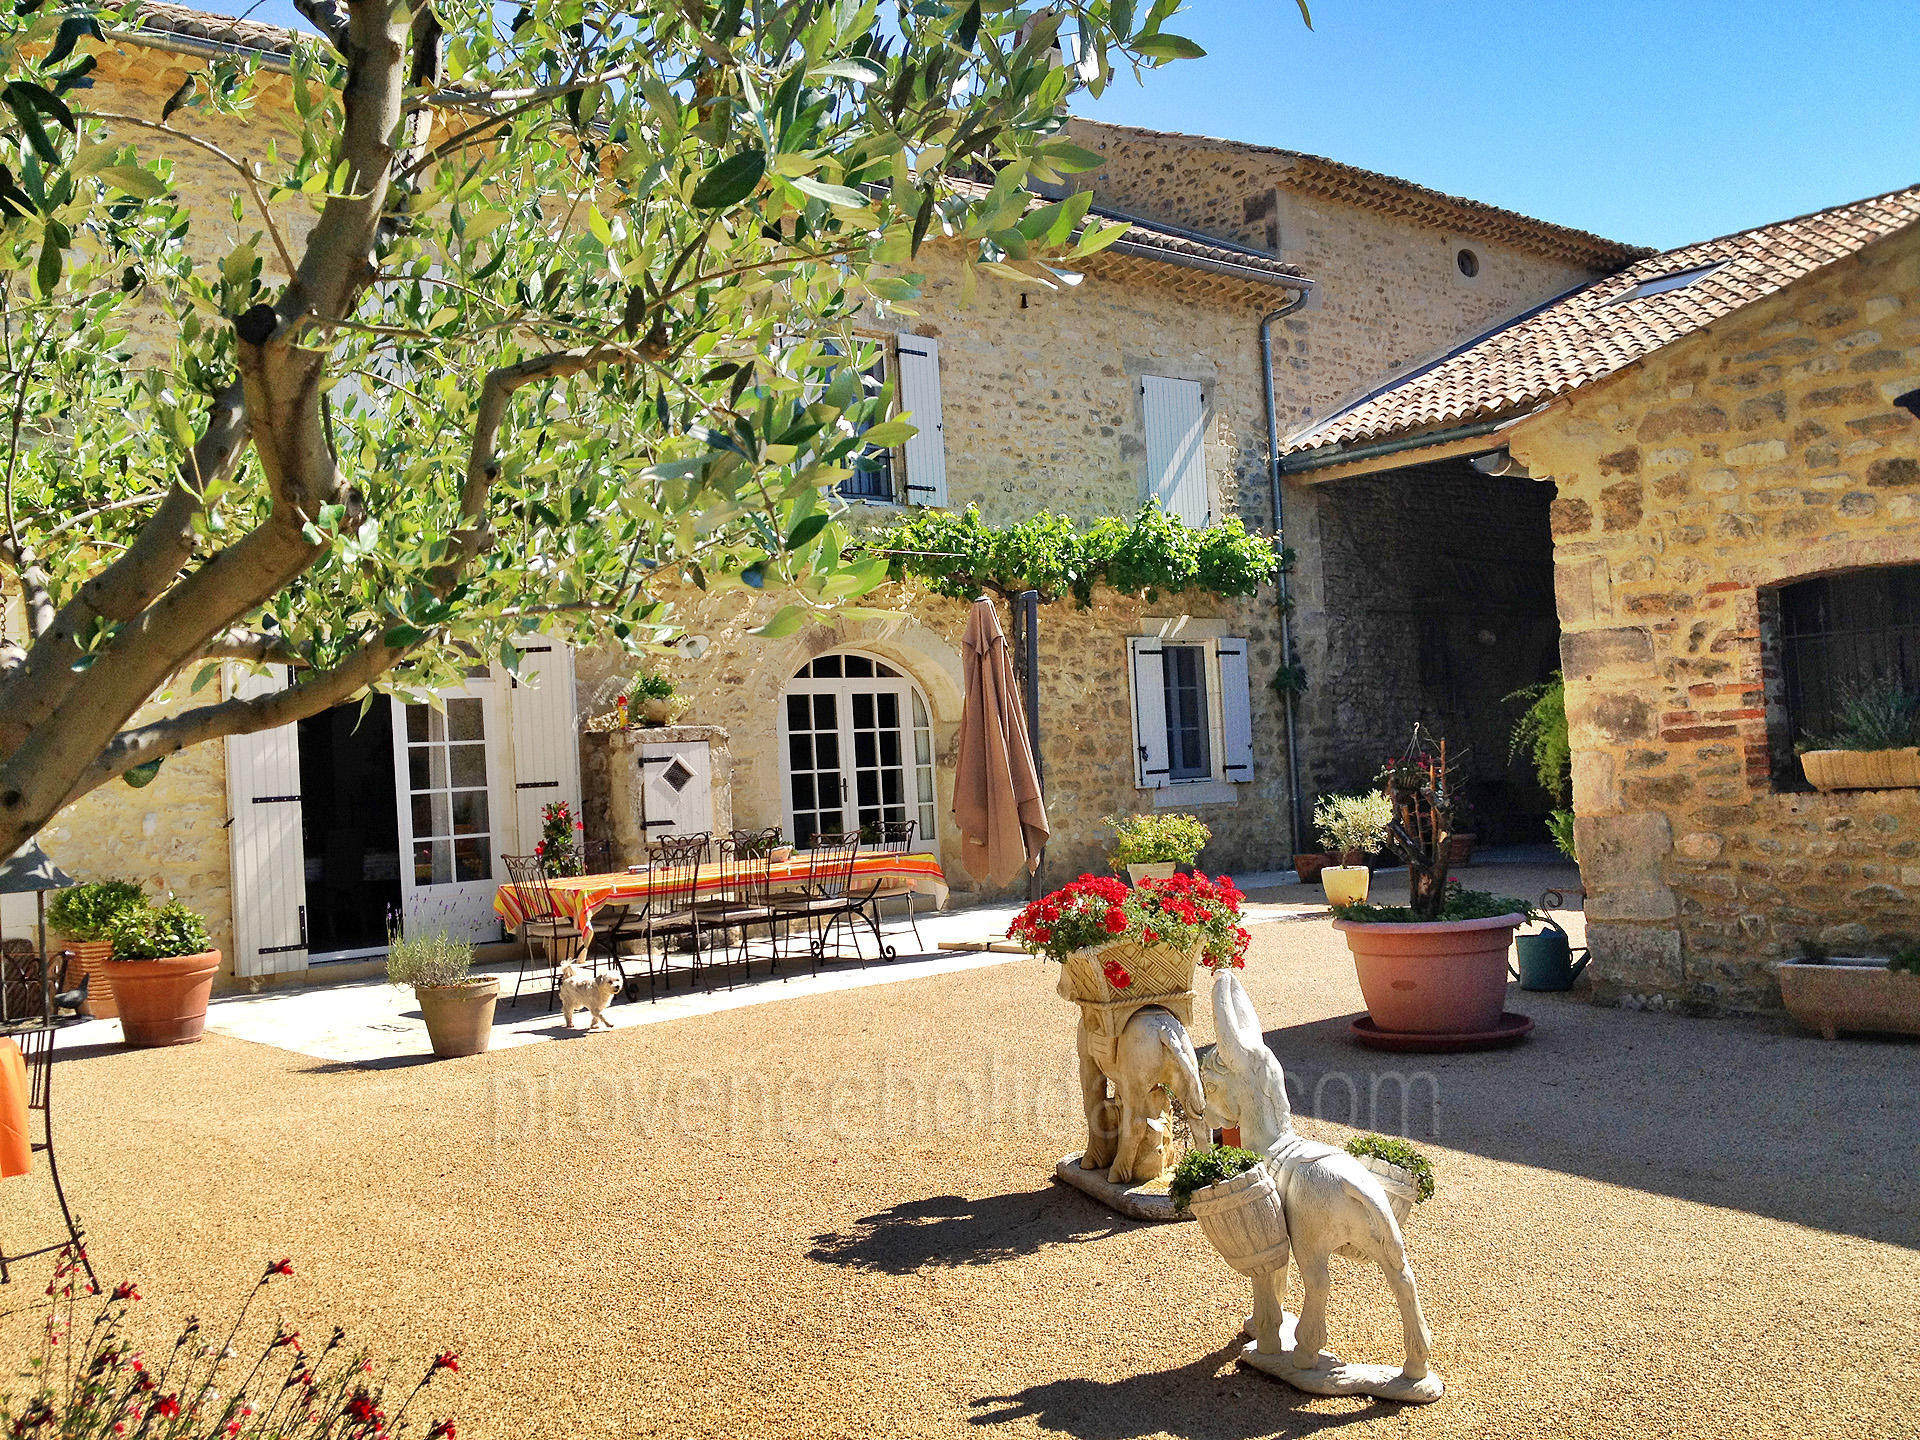 La ferme de paul location de vacances en dr me for Saint paul trois chateaux piscine